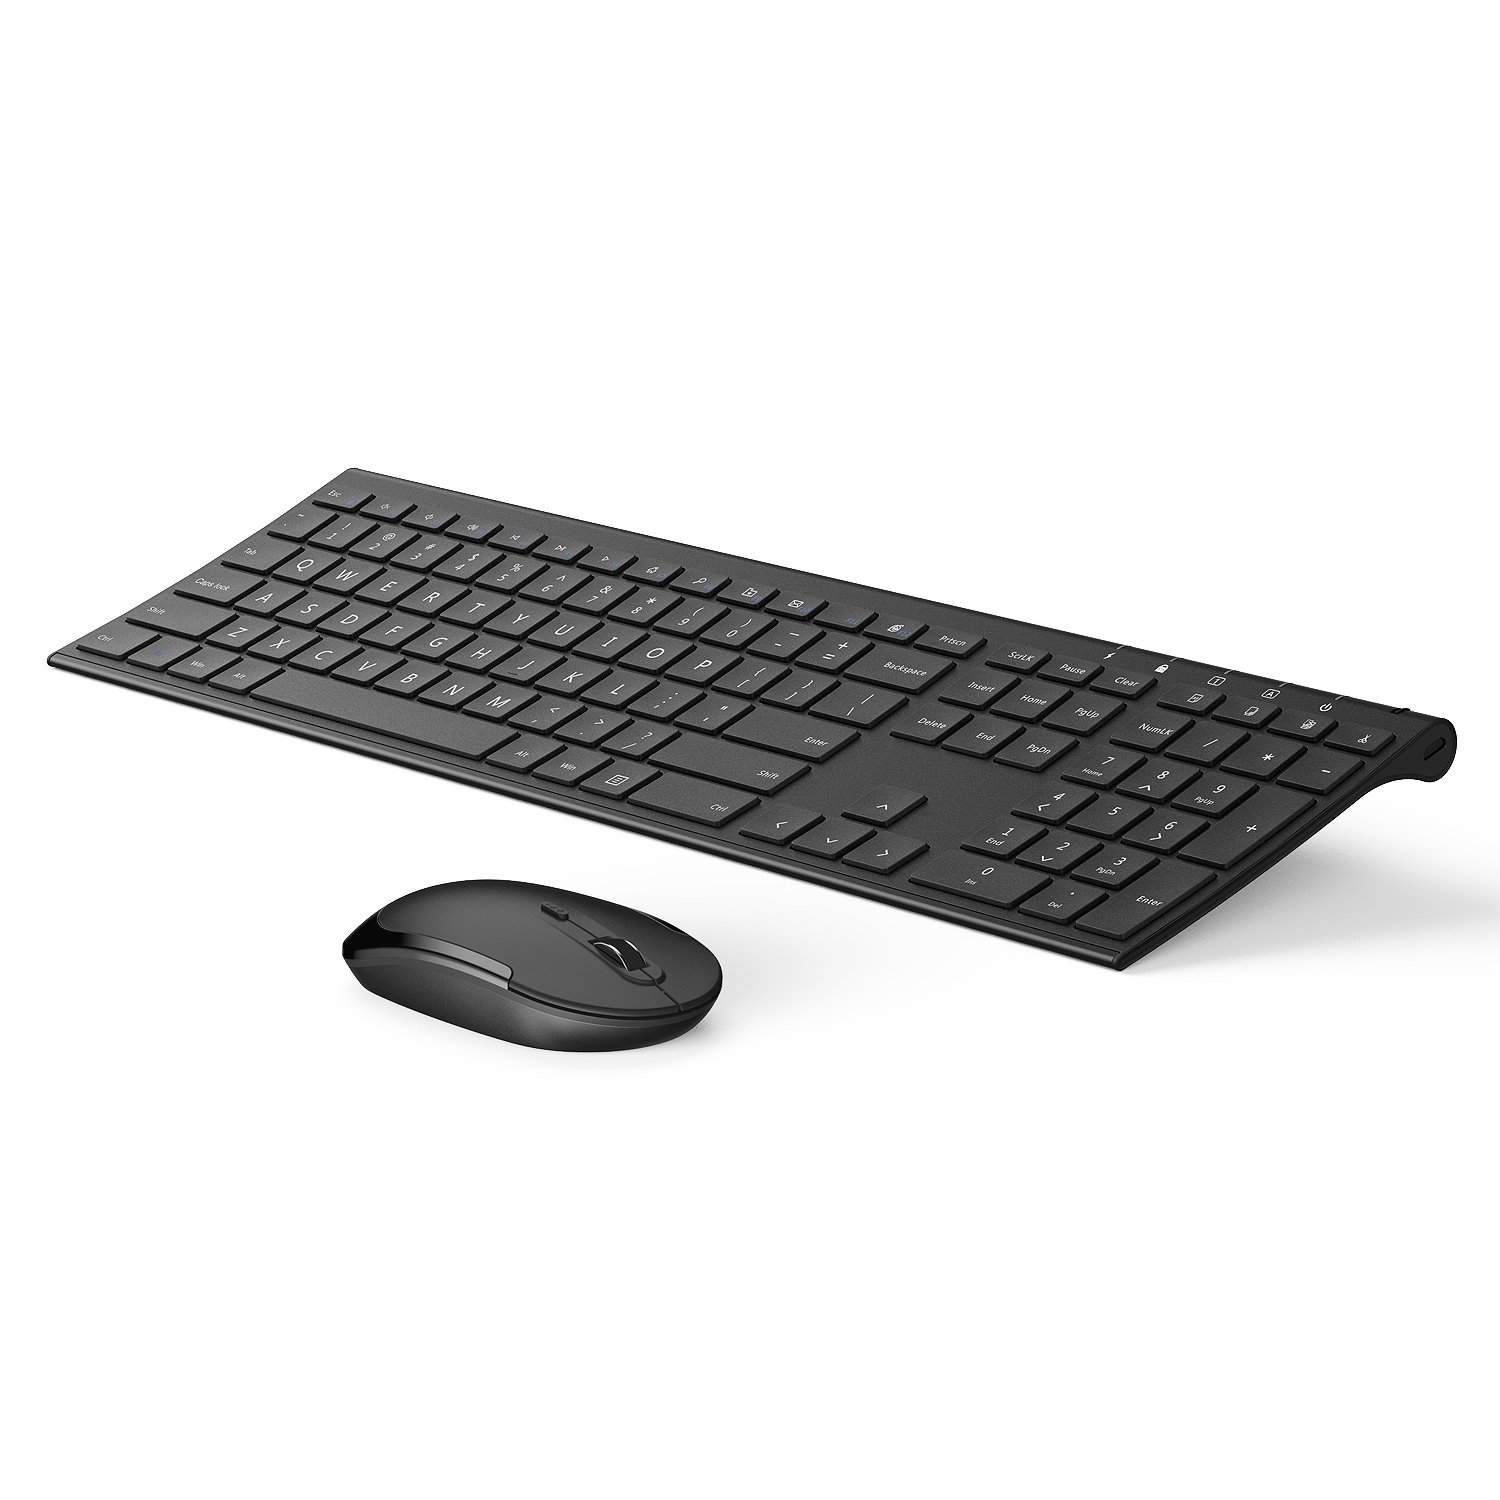 Vive Comb Wireless Keyboard and Mouse, 2.4GHz - wireless keyboards